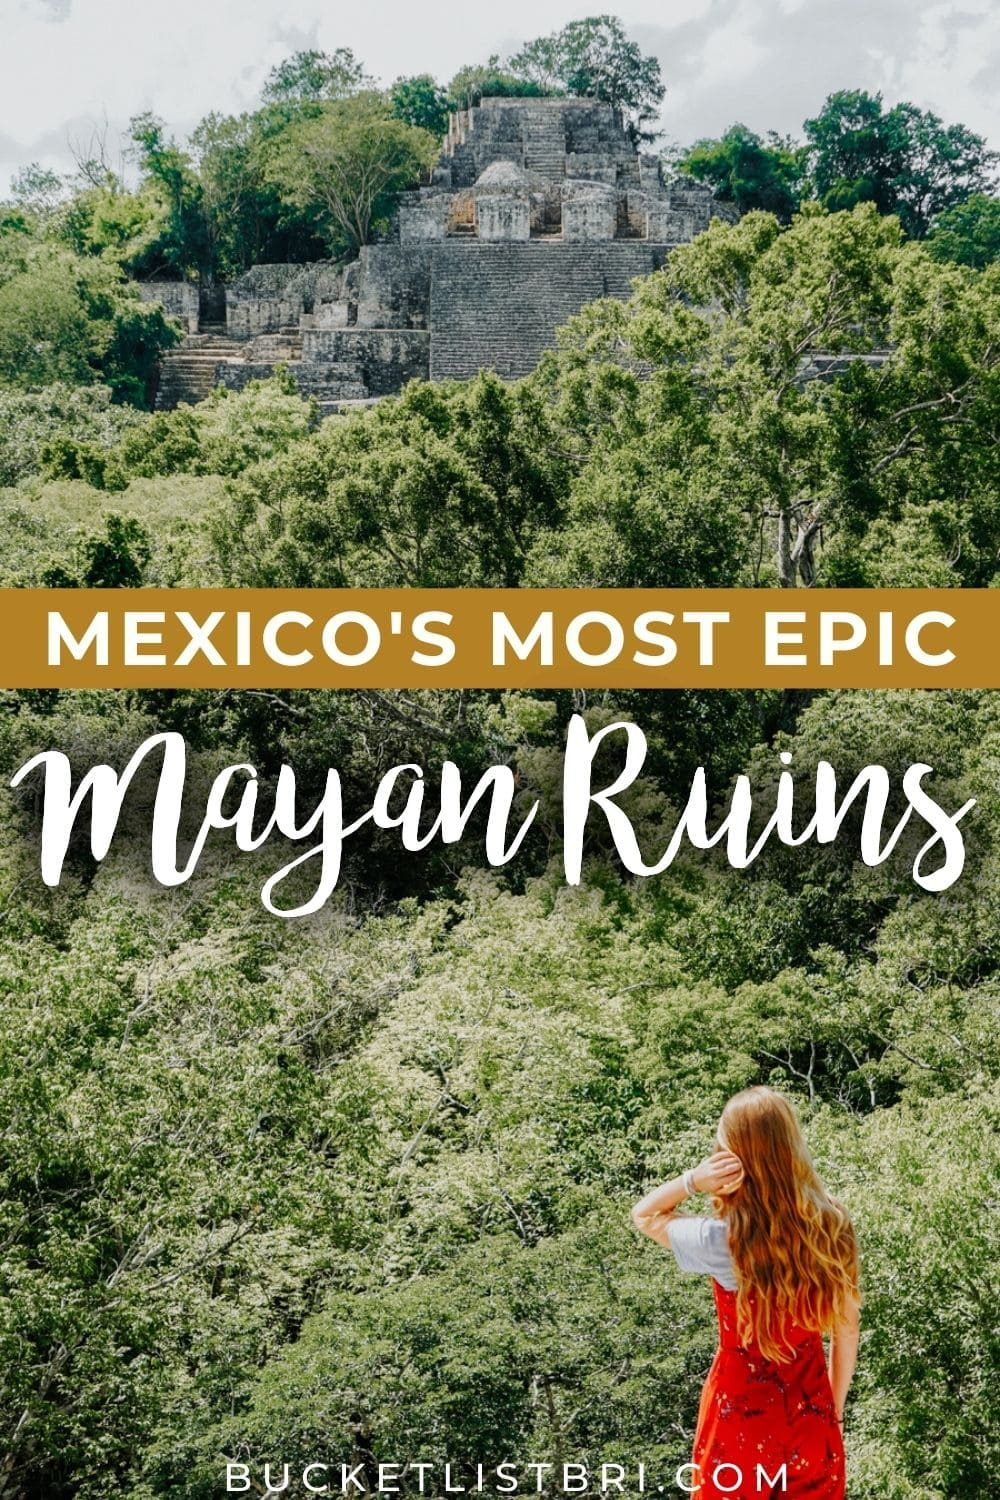 calakmul mayan ruins in mexico with text overlay